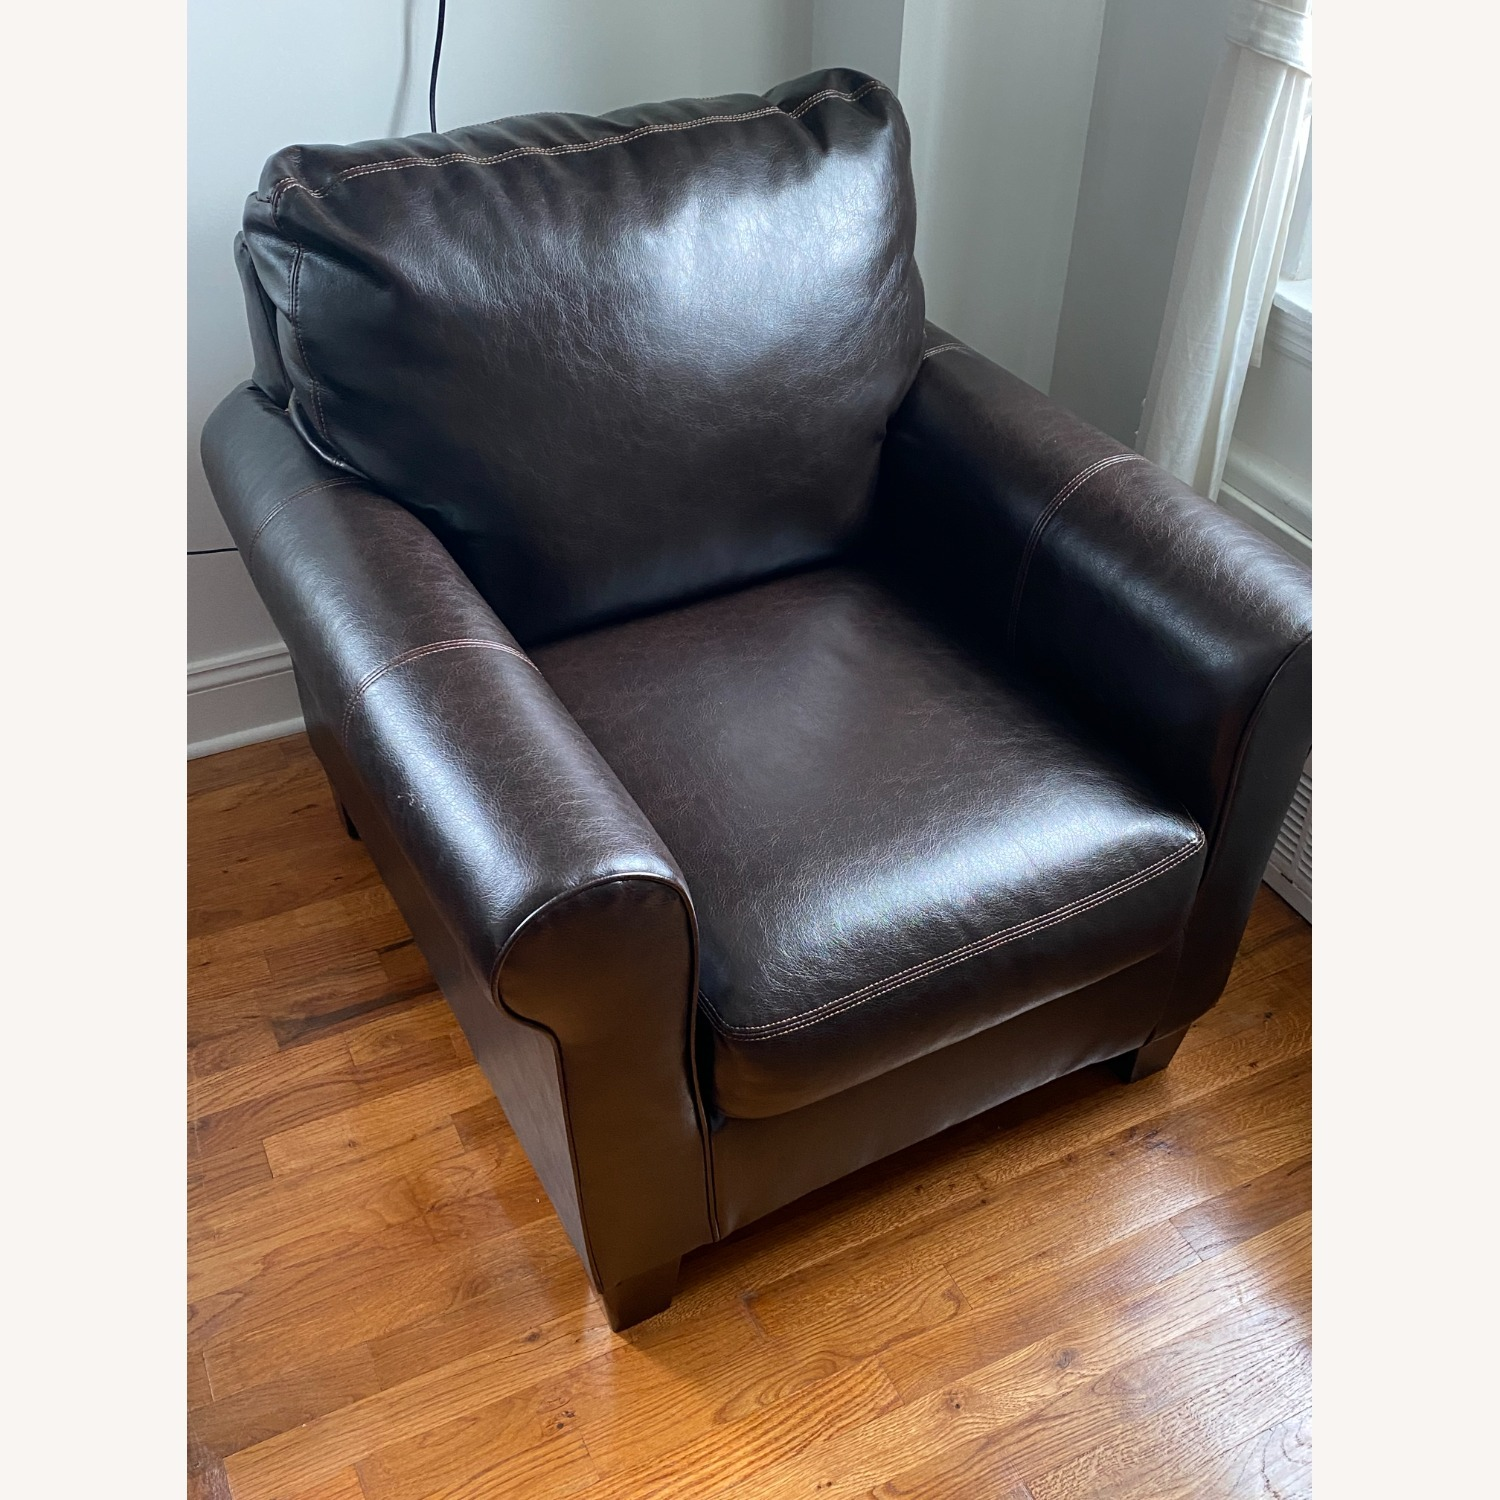 Ashley Furniture 2 Dark Brown Leather Arm Chairs - image-9